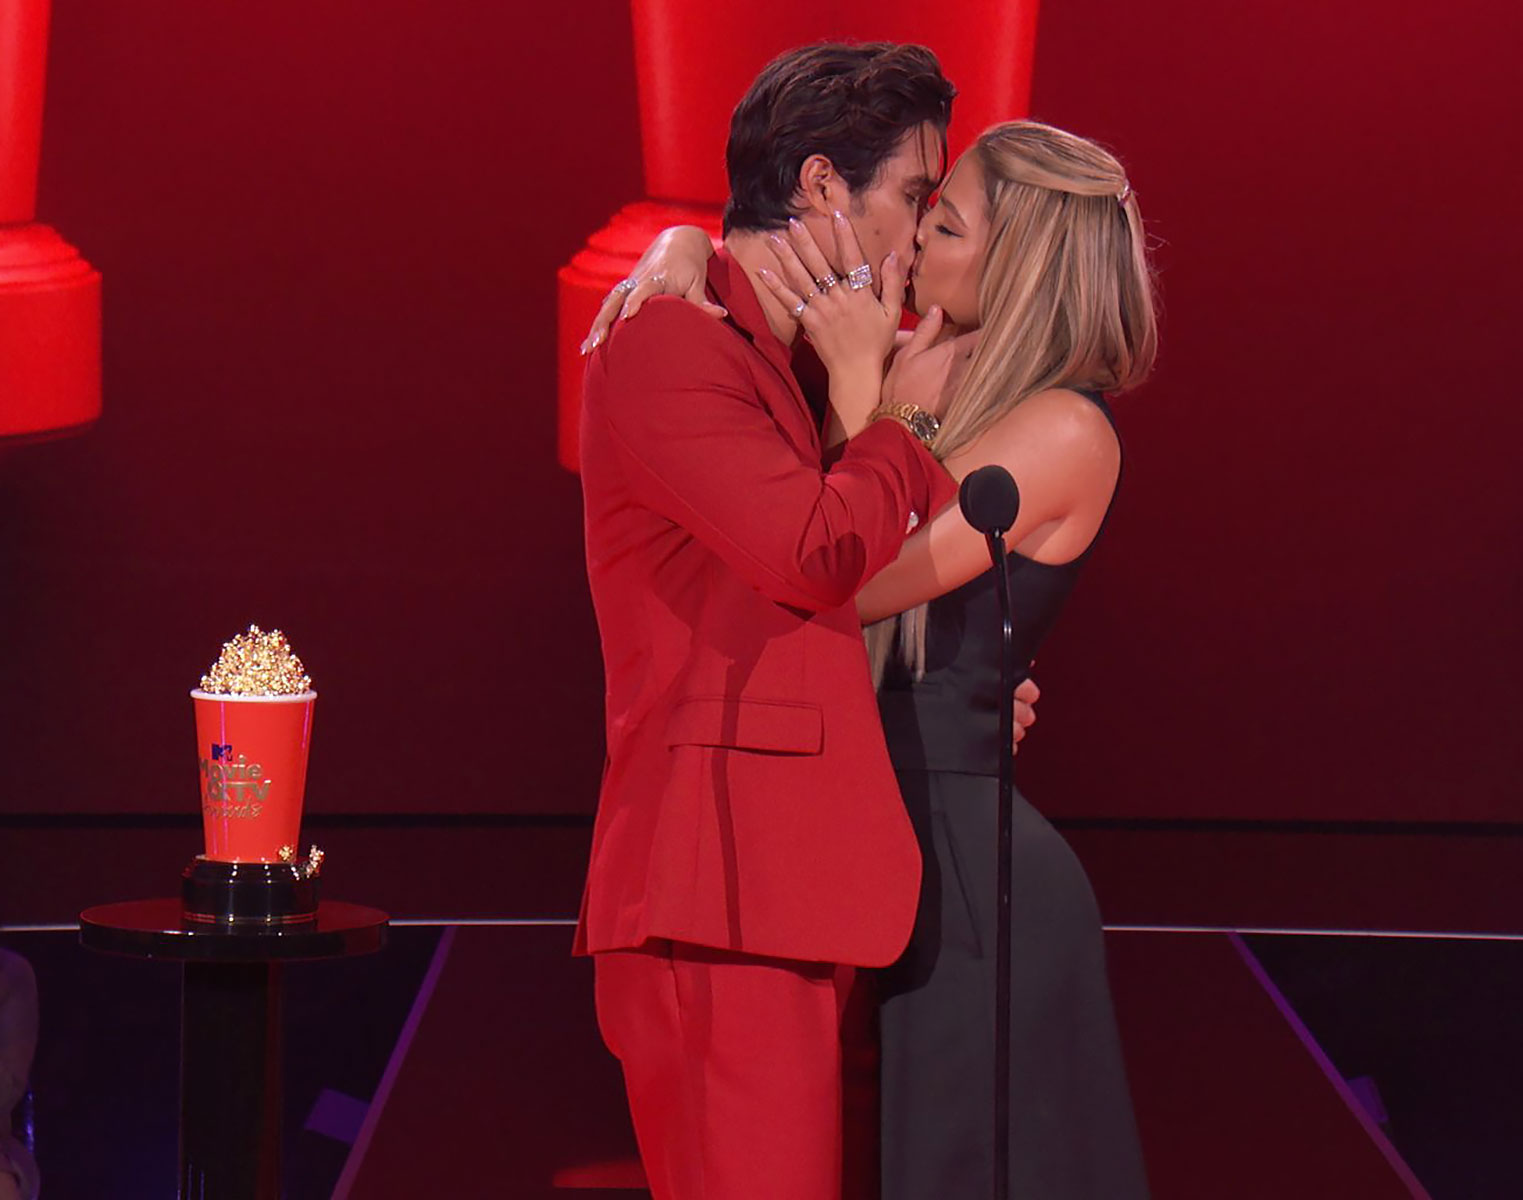 Madelyn Cline, Chase Stokes Win Best Kiss at 2021 MTV Movie and TV Awards